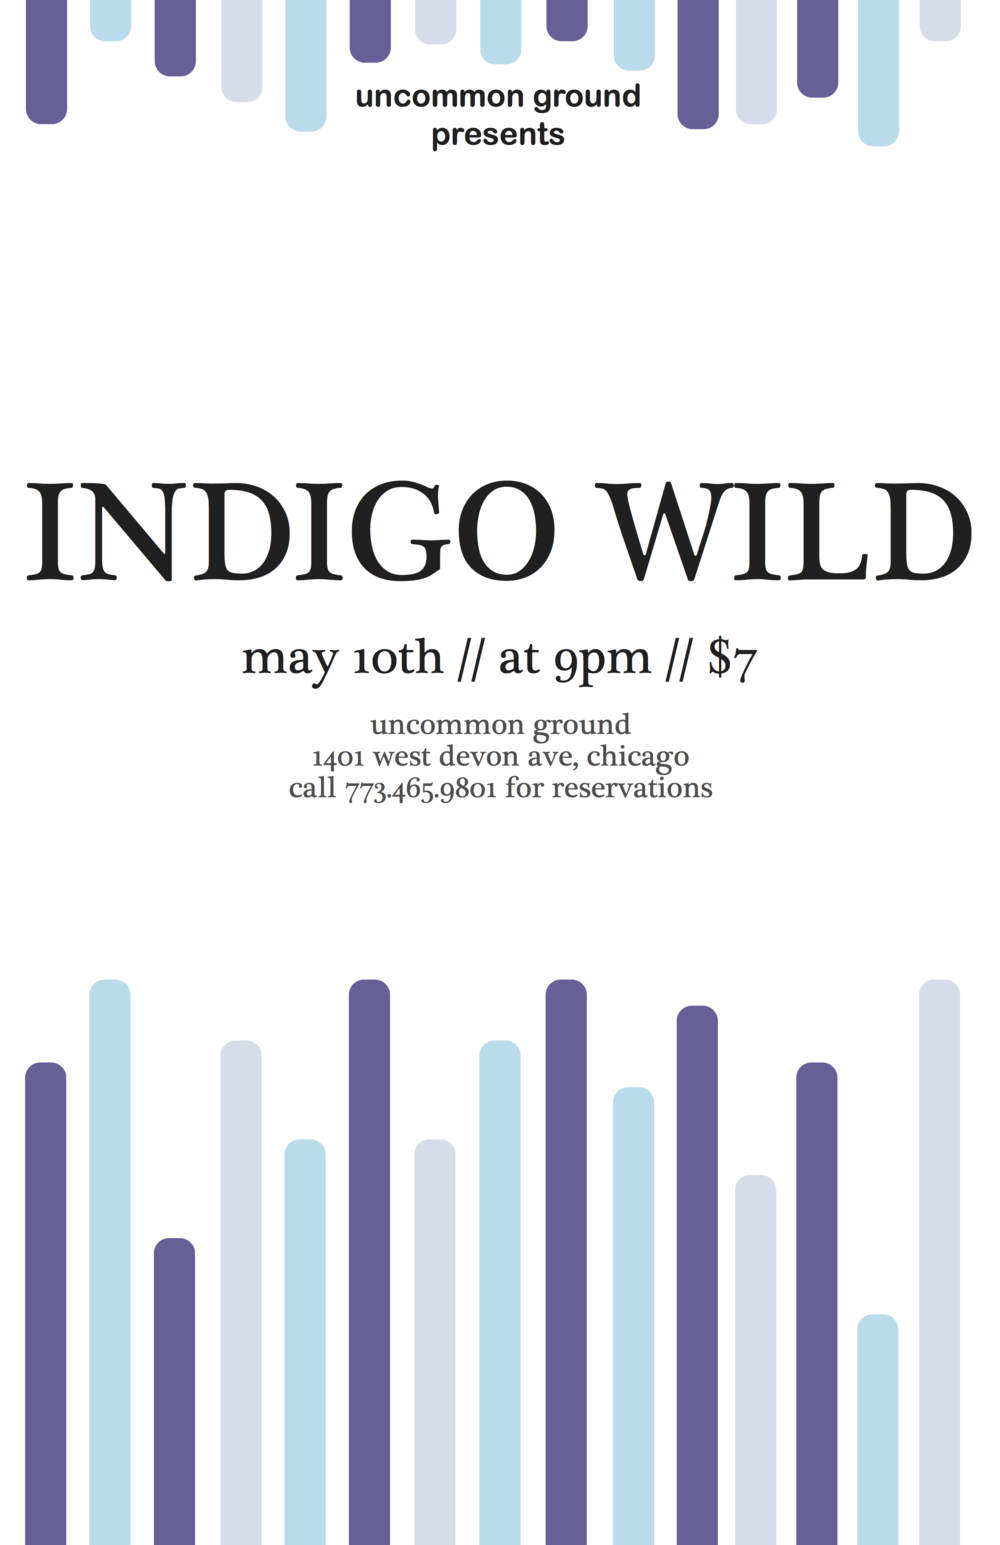 Indigo Wild at Uncommon Ground Commissioned by Uncommon Ground| Laser Jet Print & Web Use